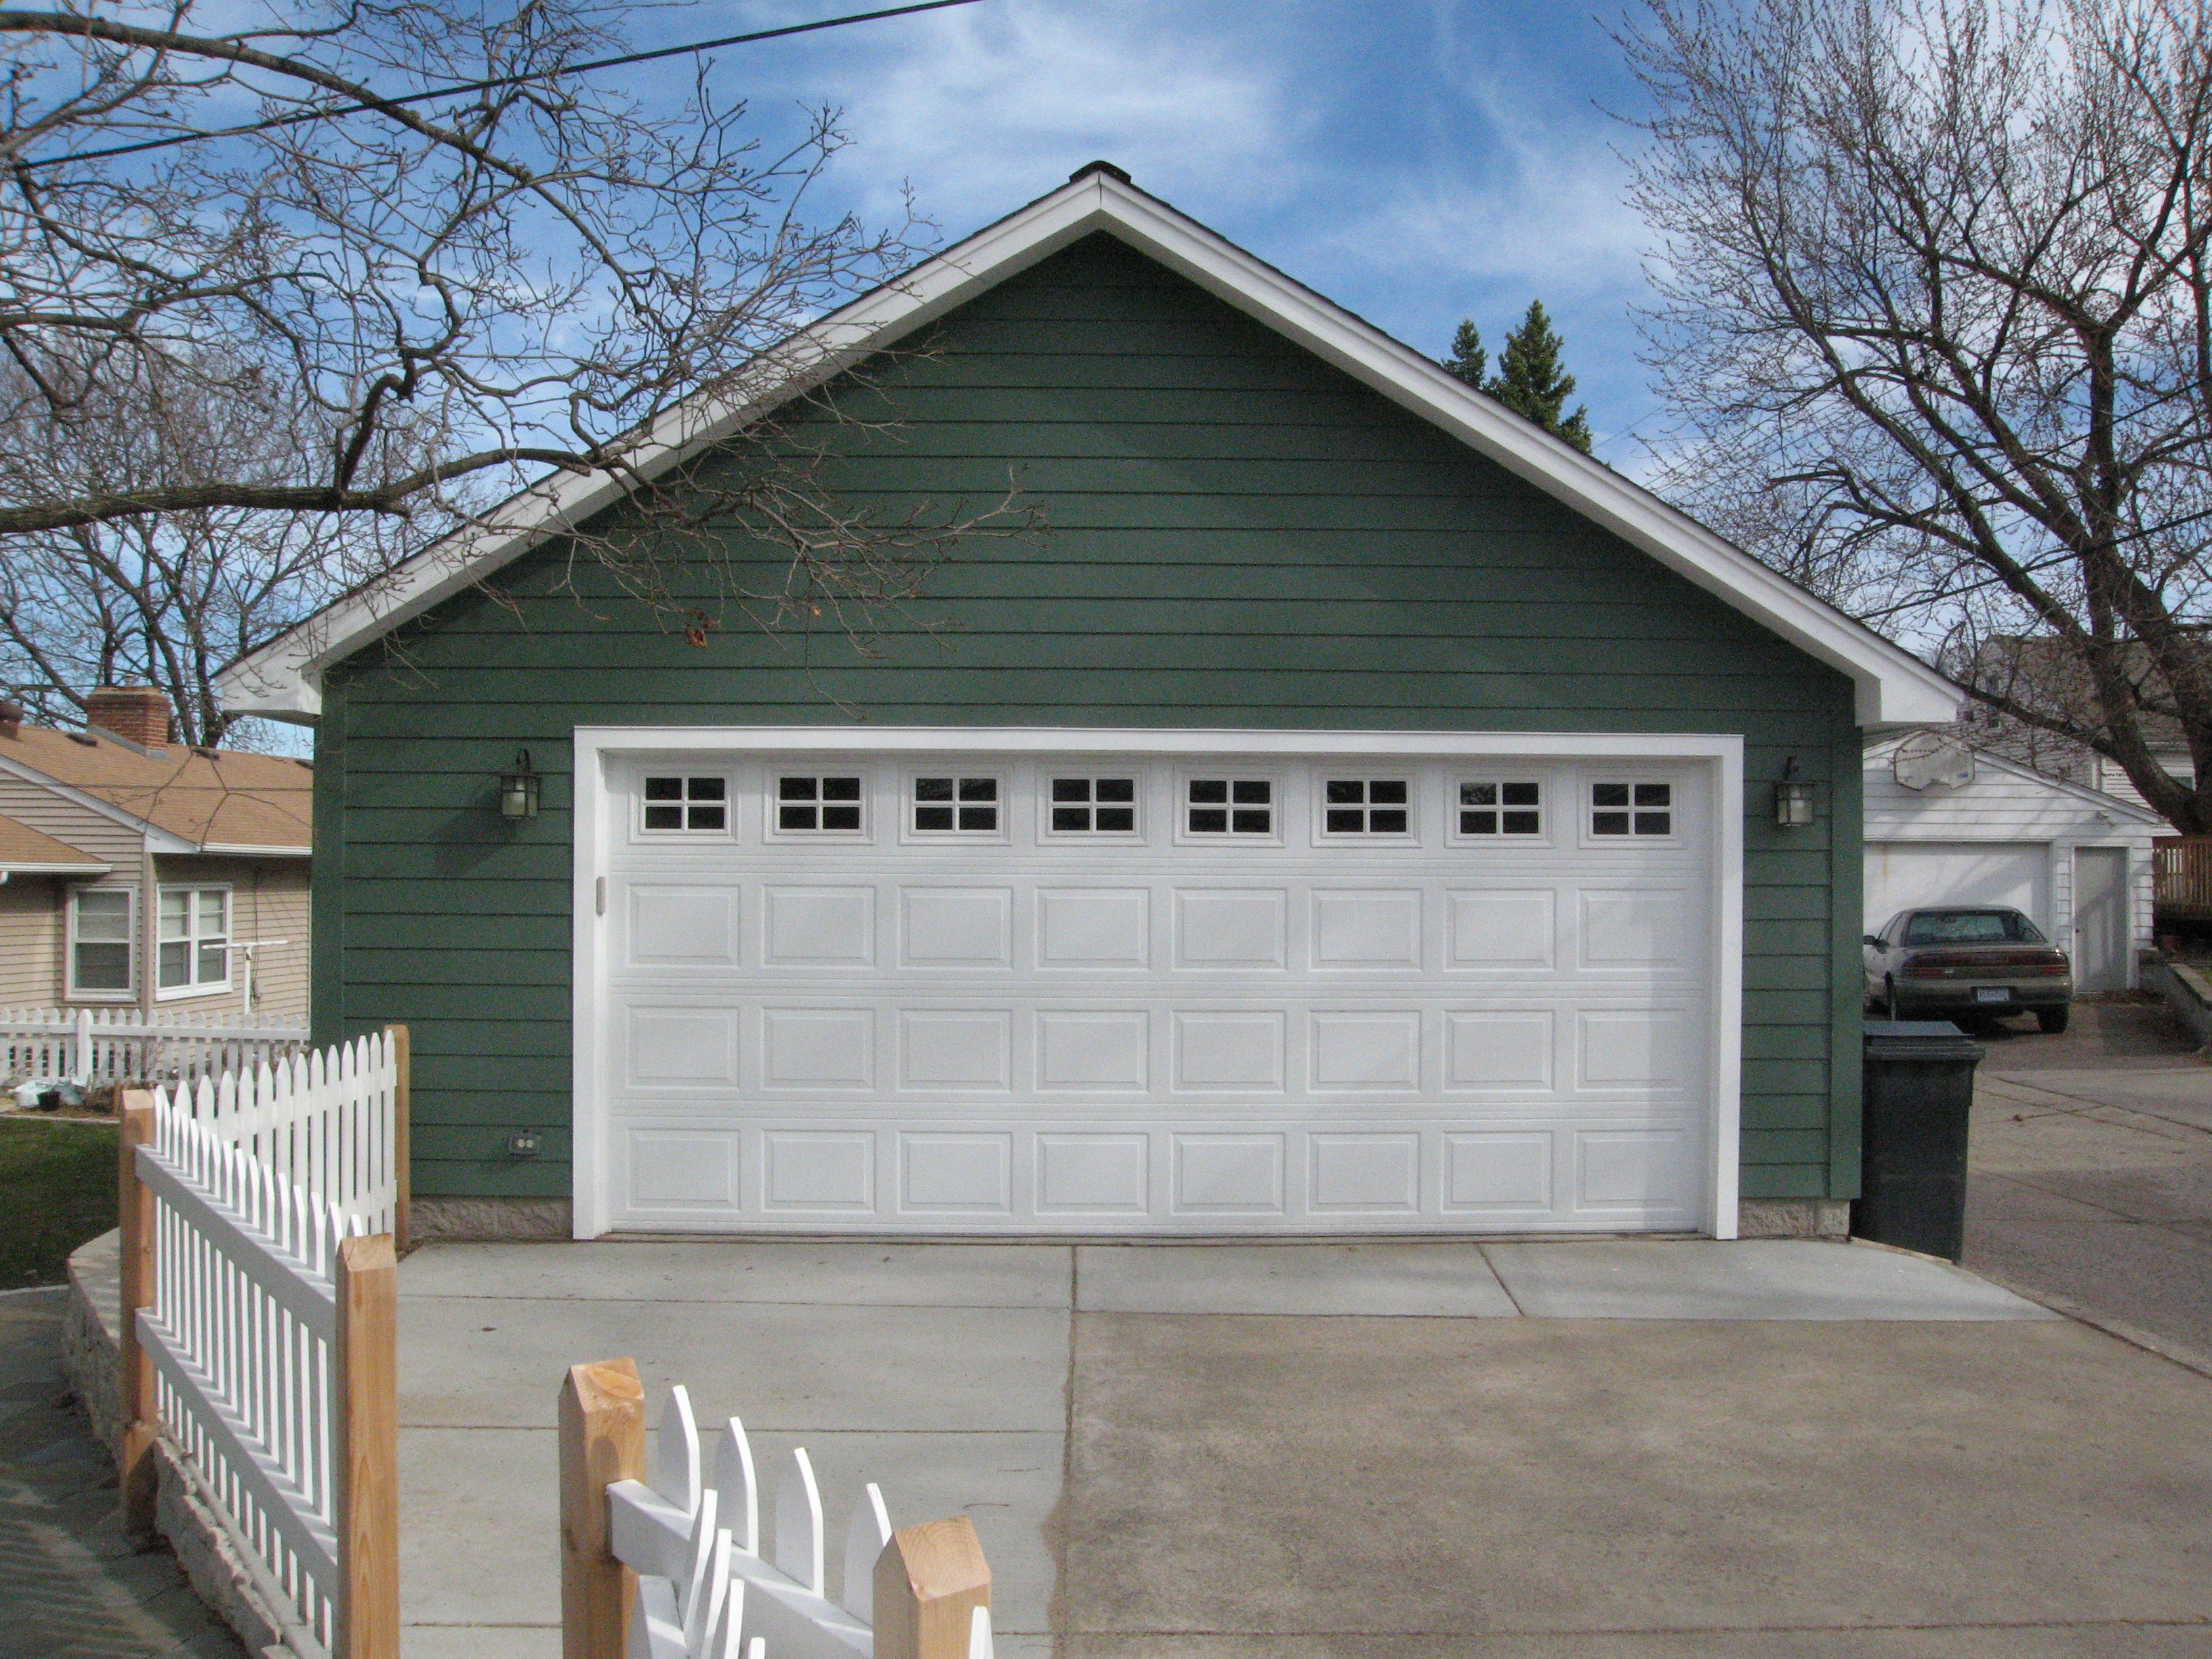 Free storage truss garage plans for Free garage plans online